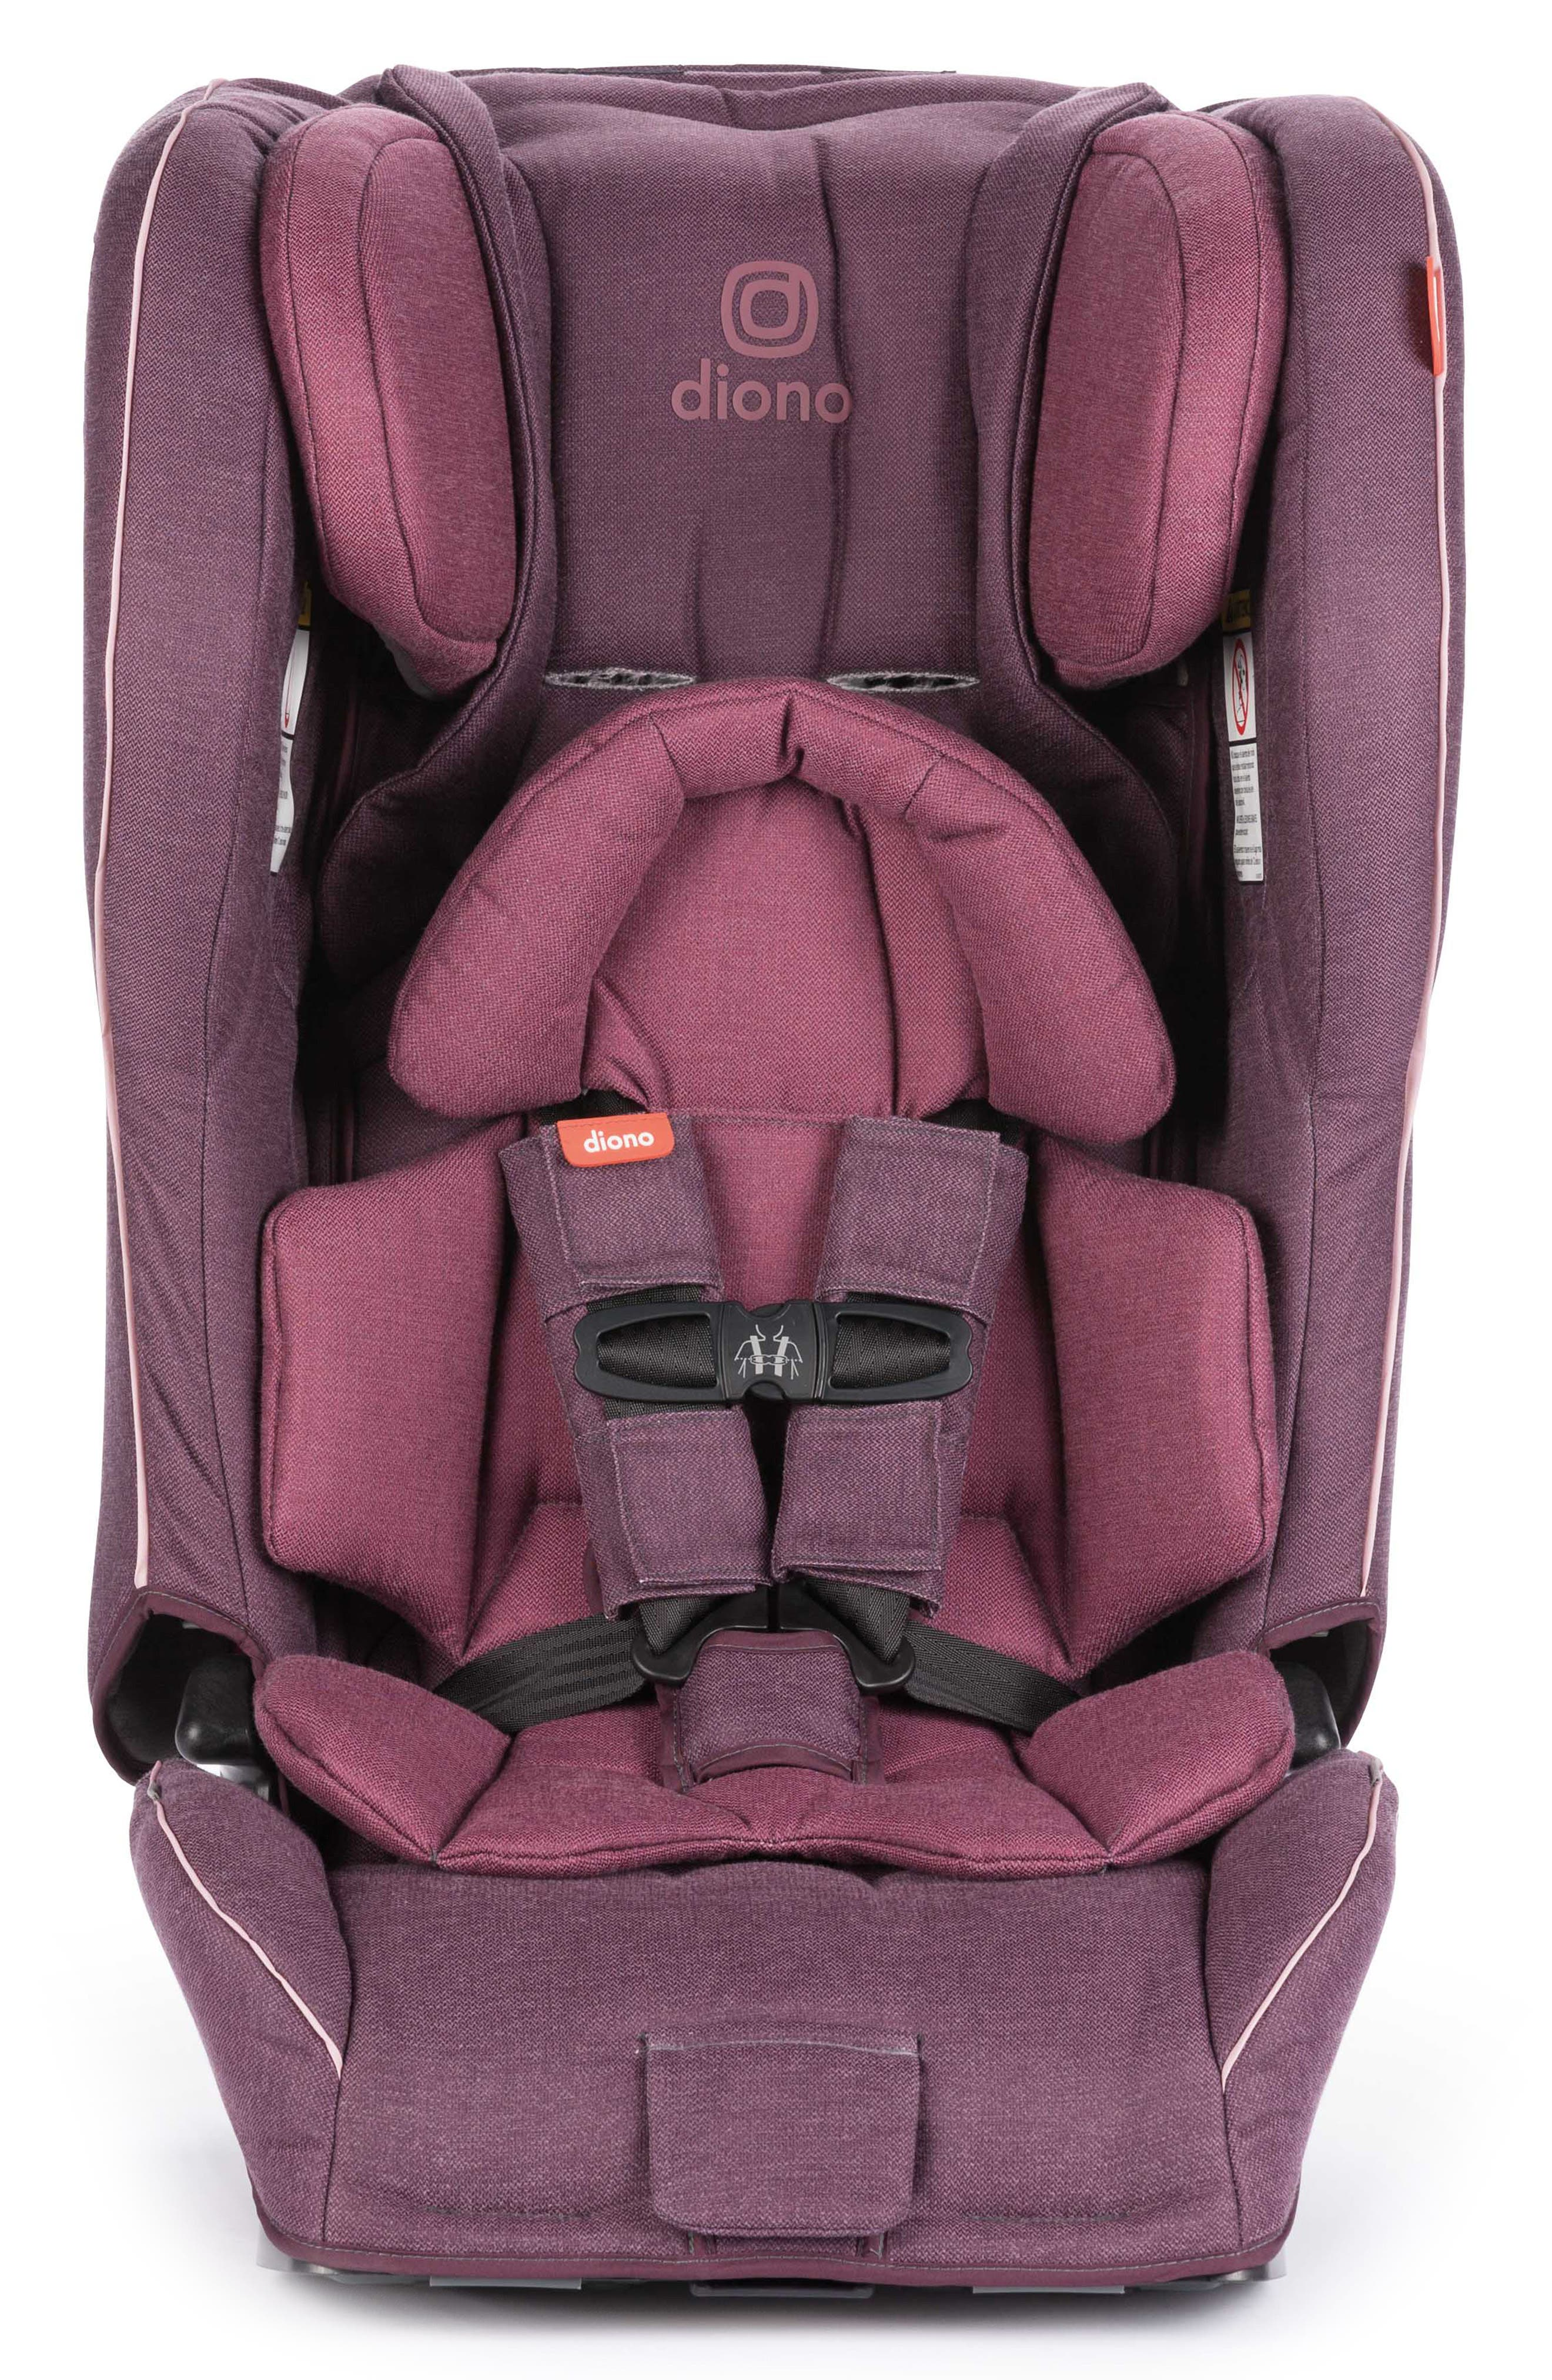 Infant Diono Rainier 2 Axt Car Seat Size One Size  Purple